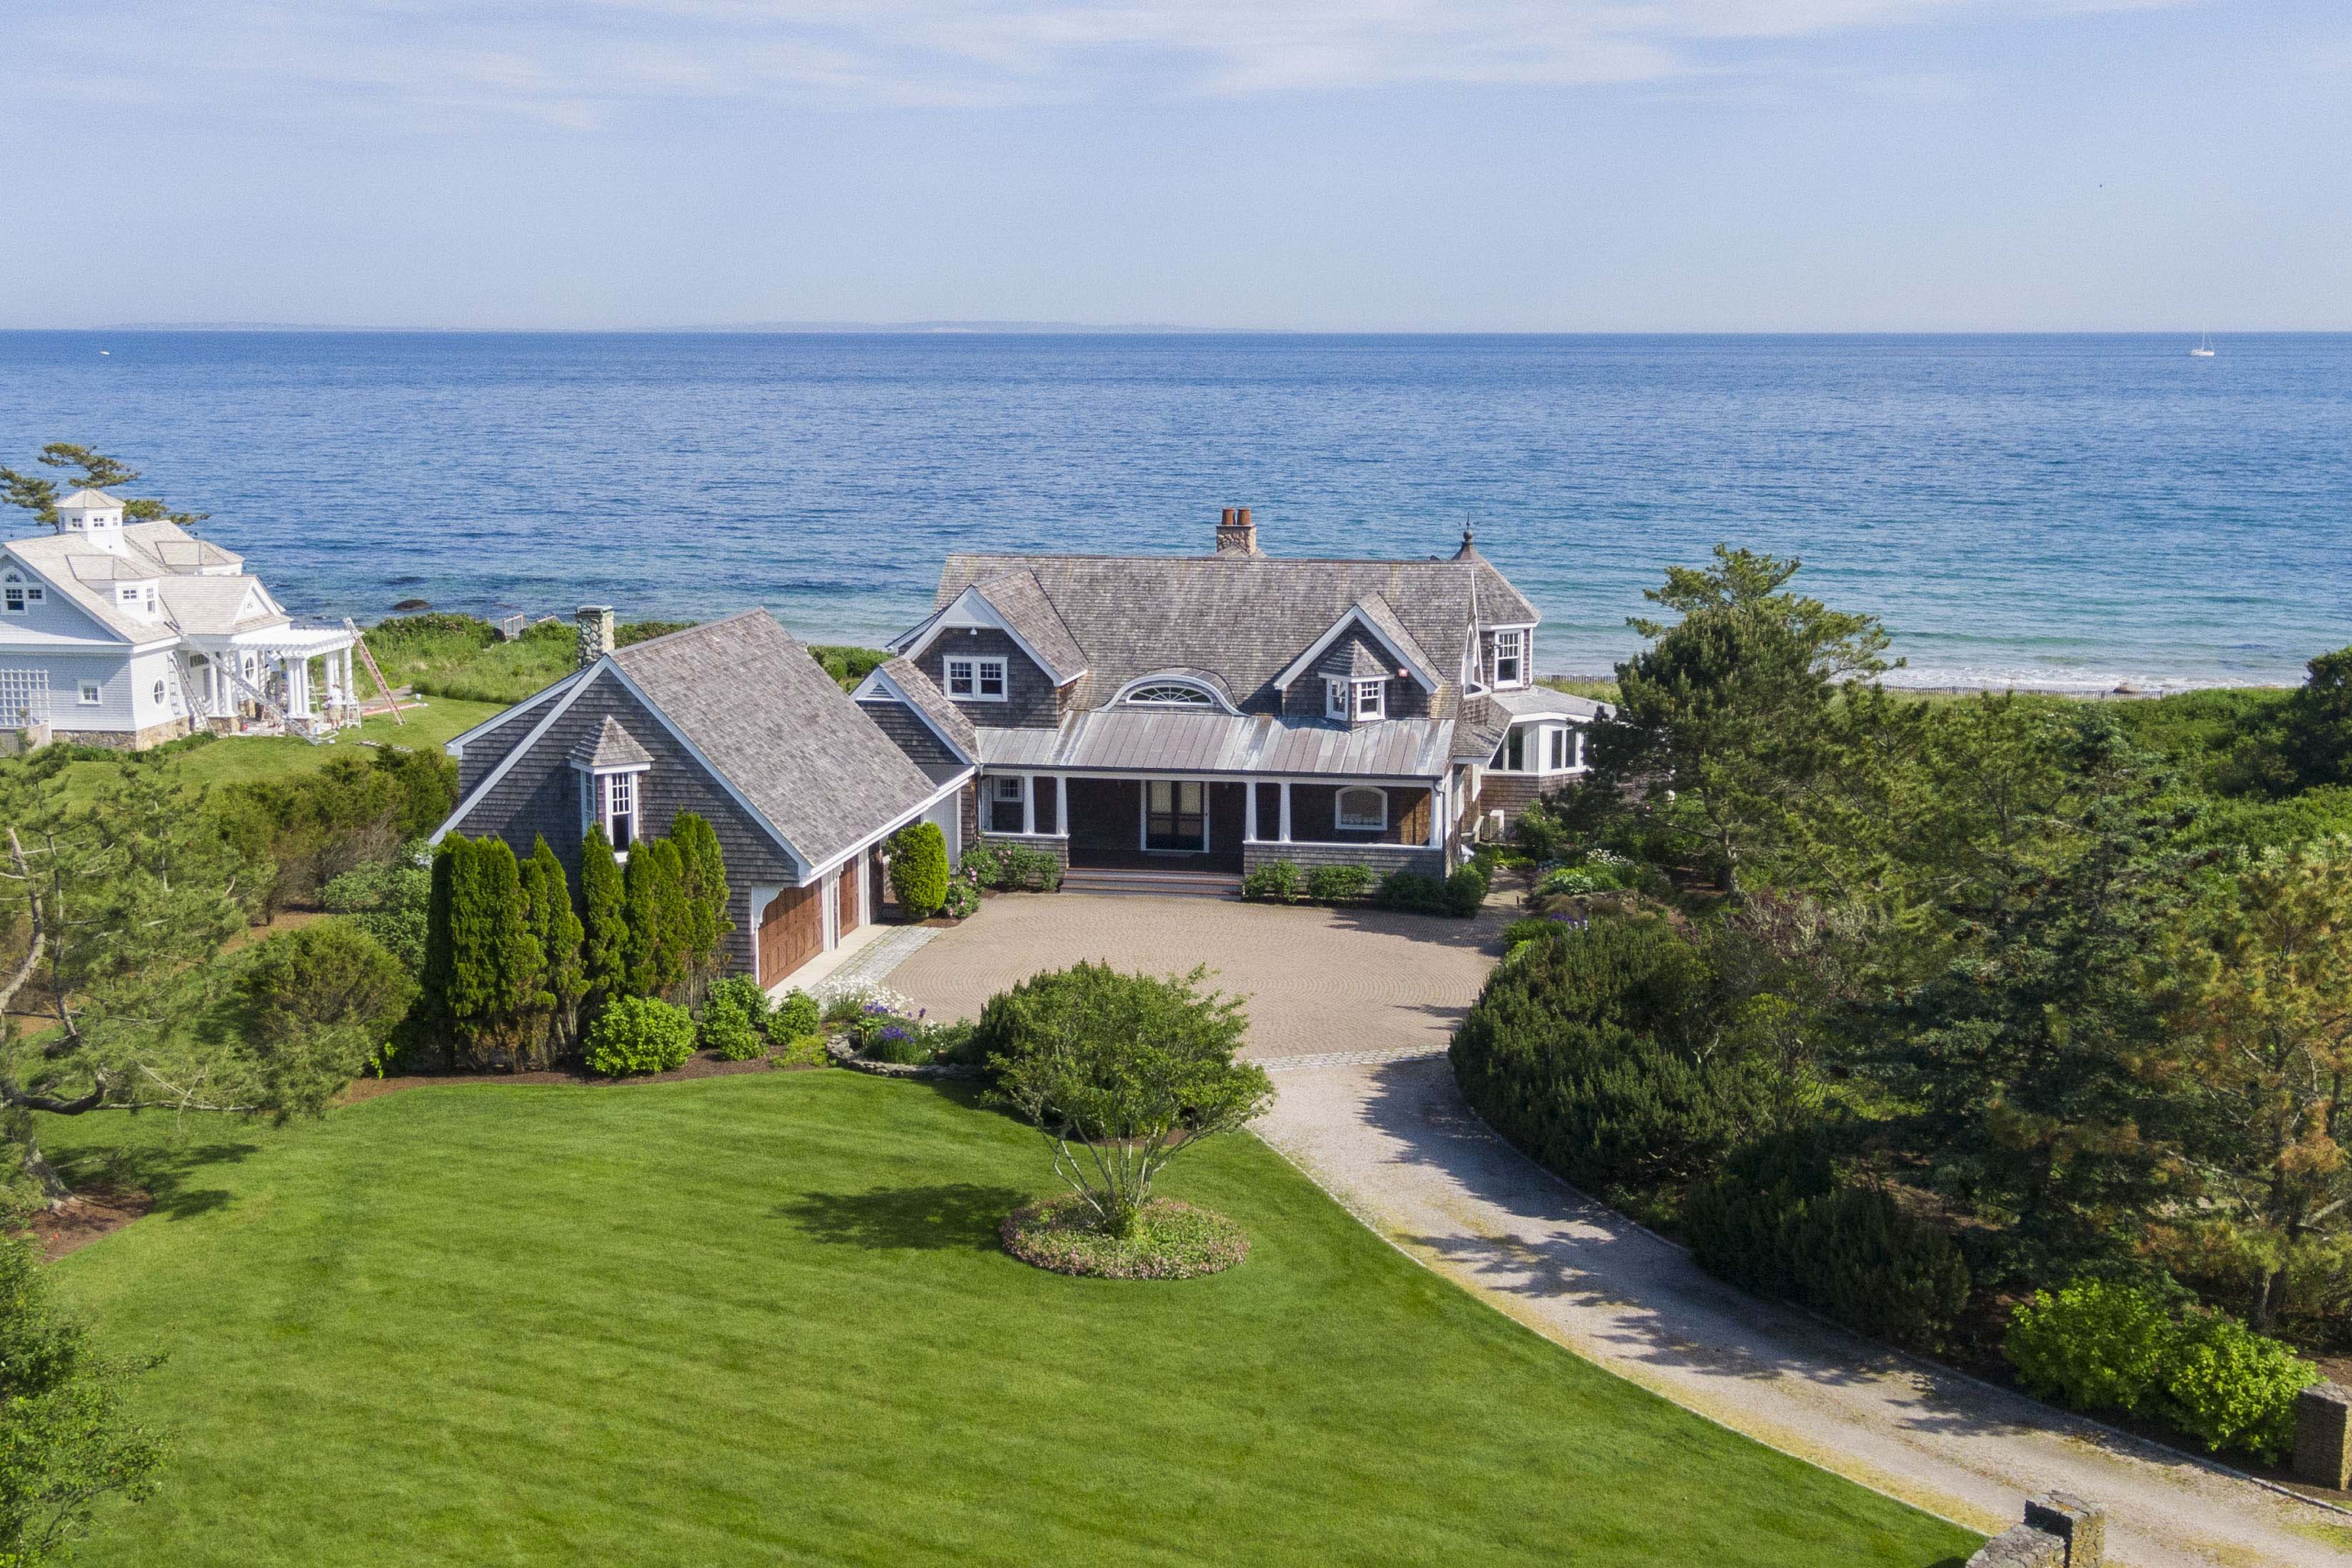 QUONNIE OCEANFRONT HOME ON 2+ ACRES SELLS FOR $6,500,000, MARKING HIGHEST SALE IN CHARLESTOWN EVER*